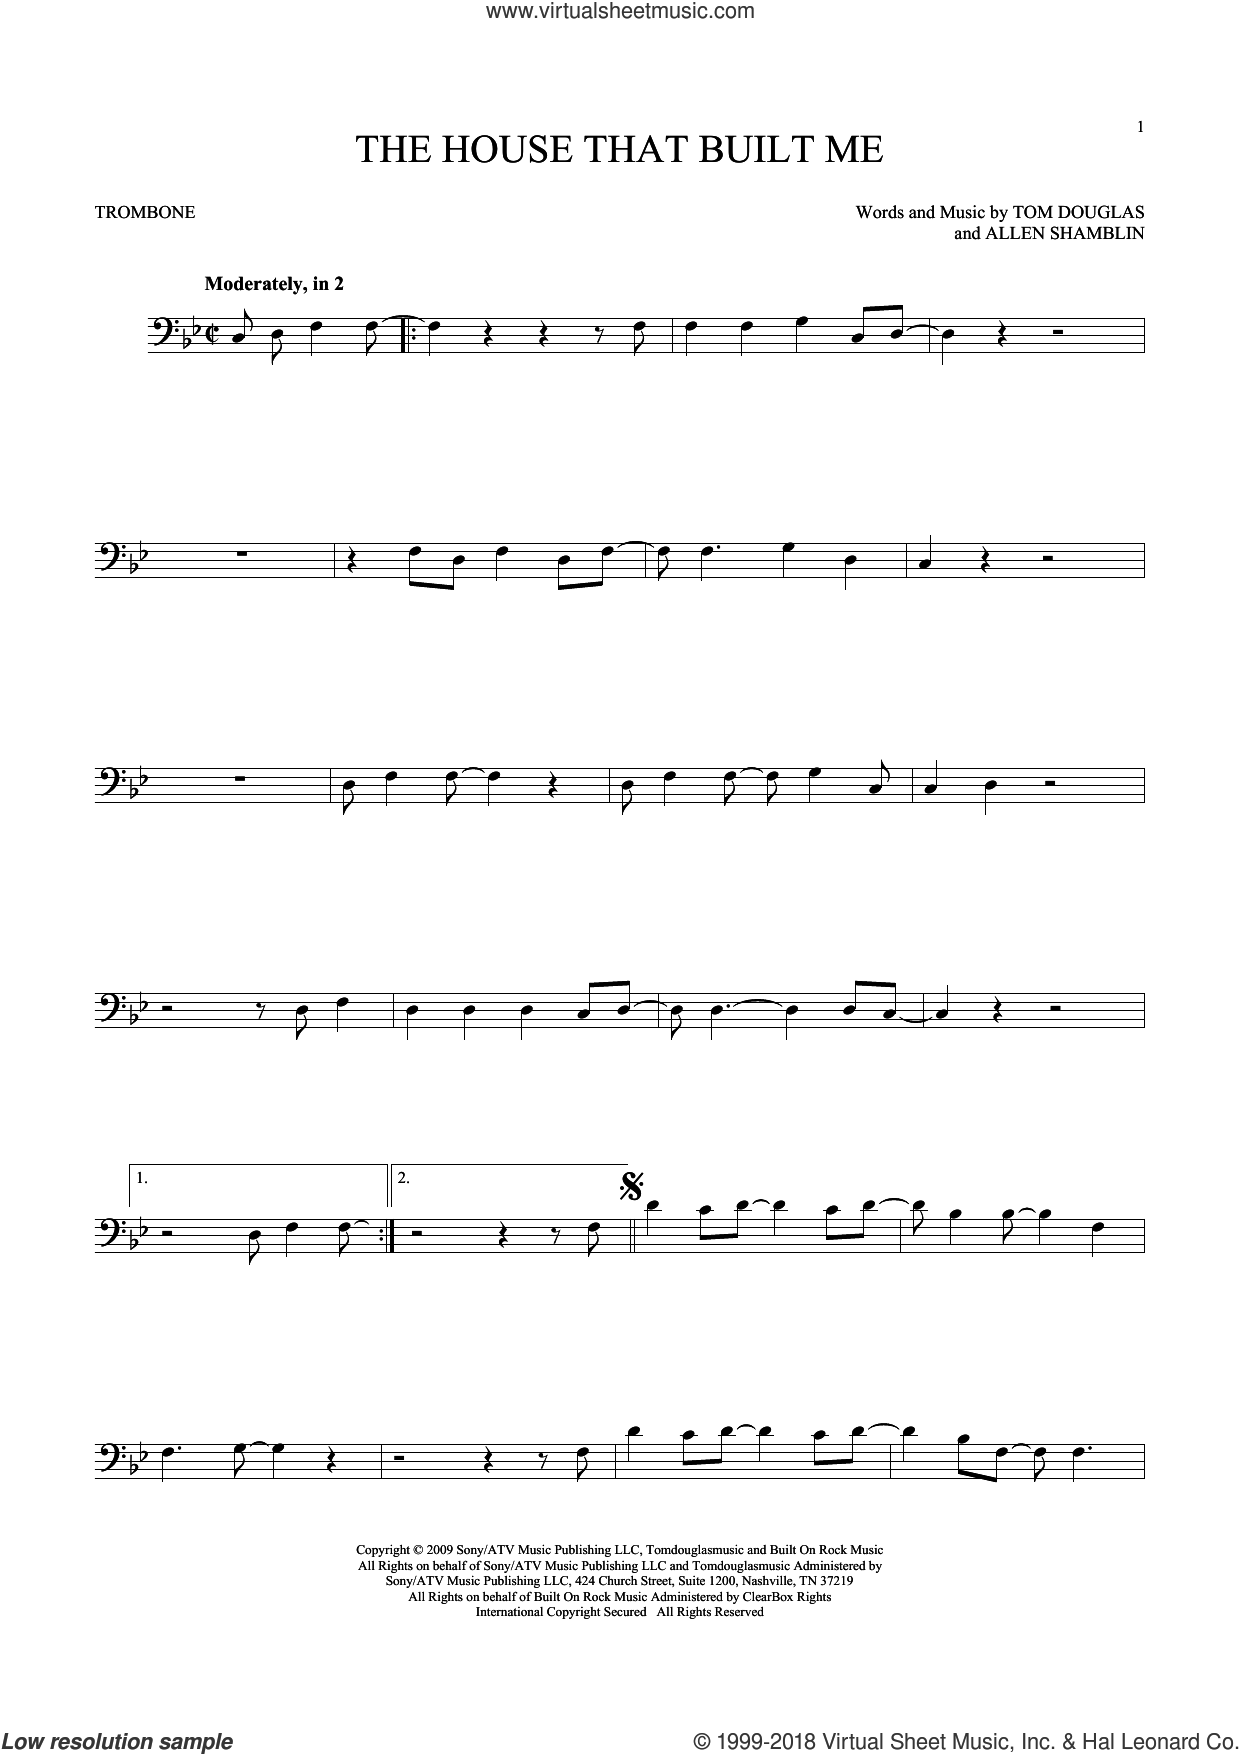 The House That Built Me sheet music for trombone solo by Miranda Lambert, Allen Shamblin and Tom Douglas, intermediate skill level